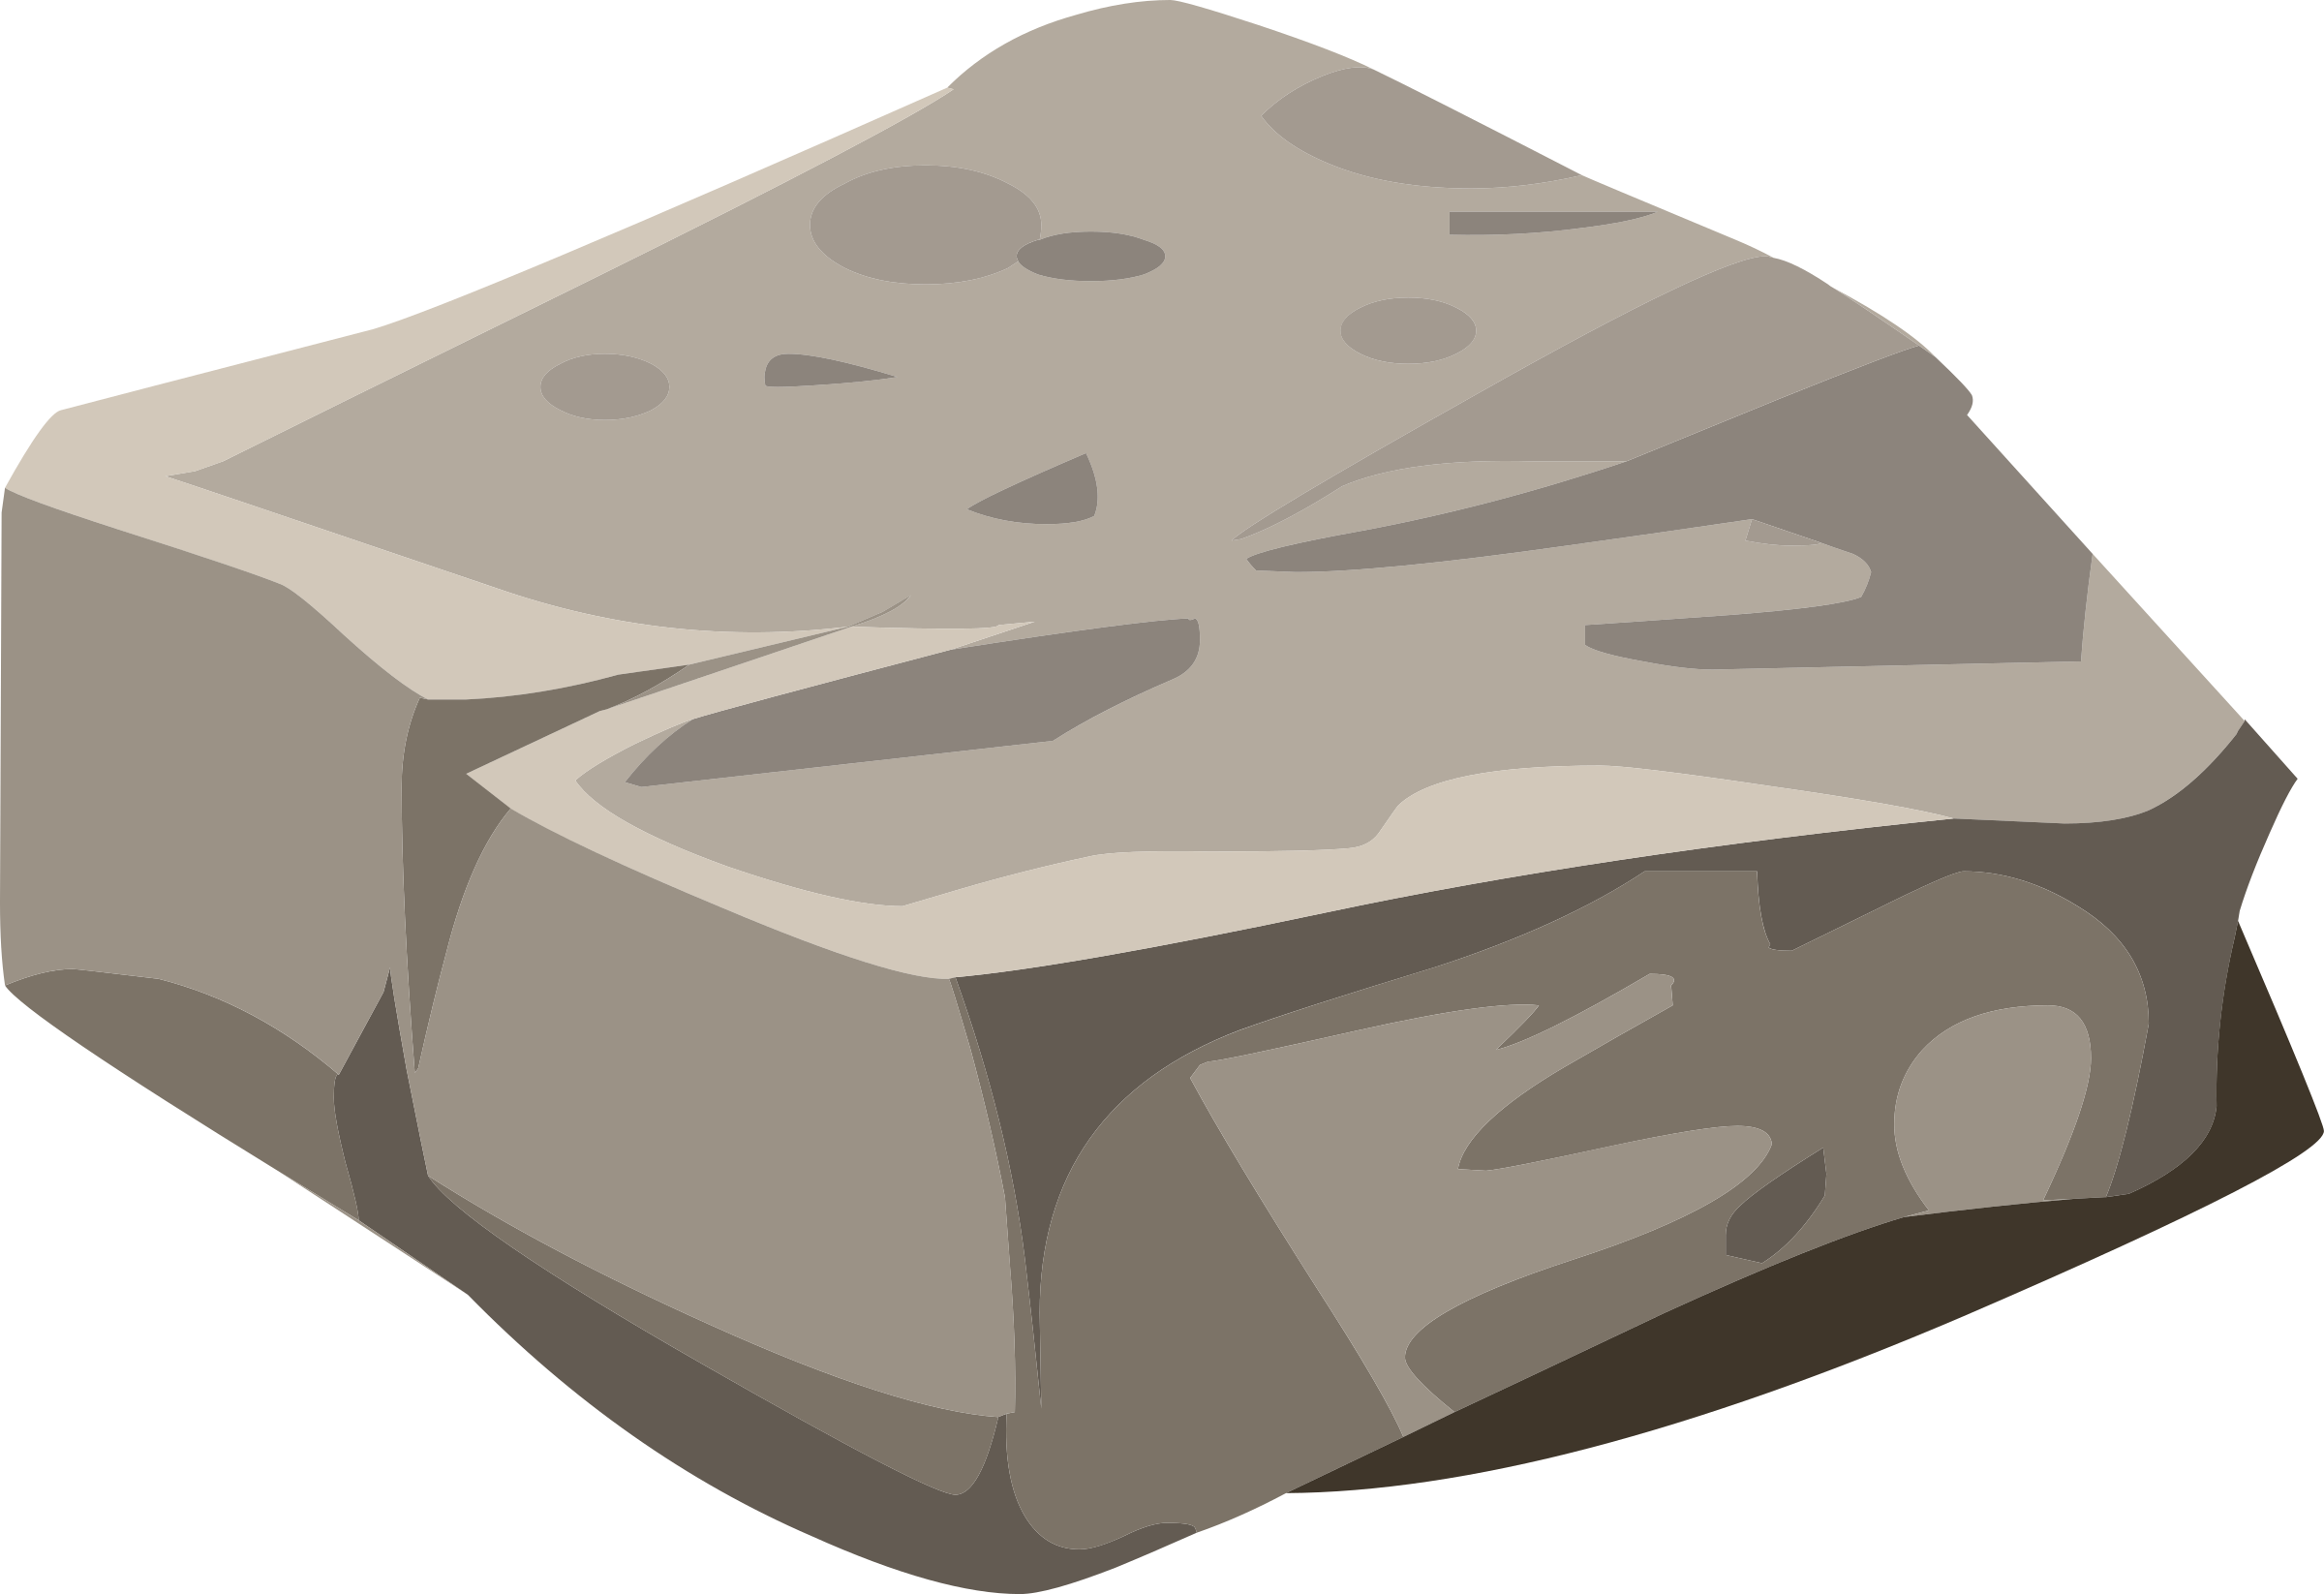 collection of rocks. Rock clipart river rock